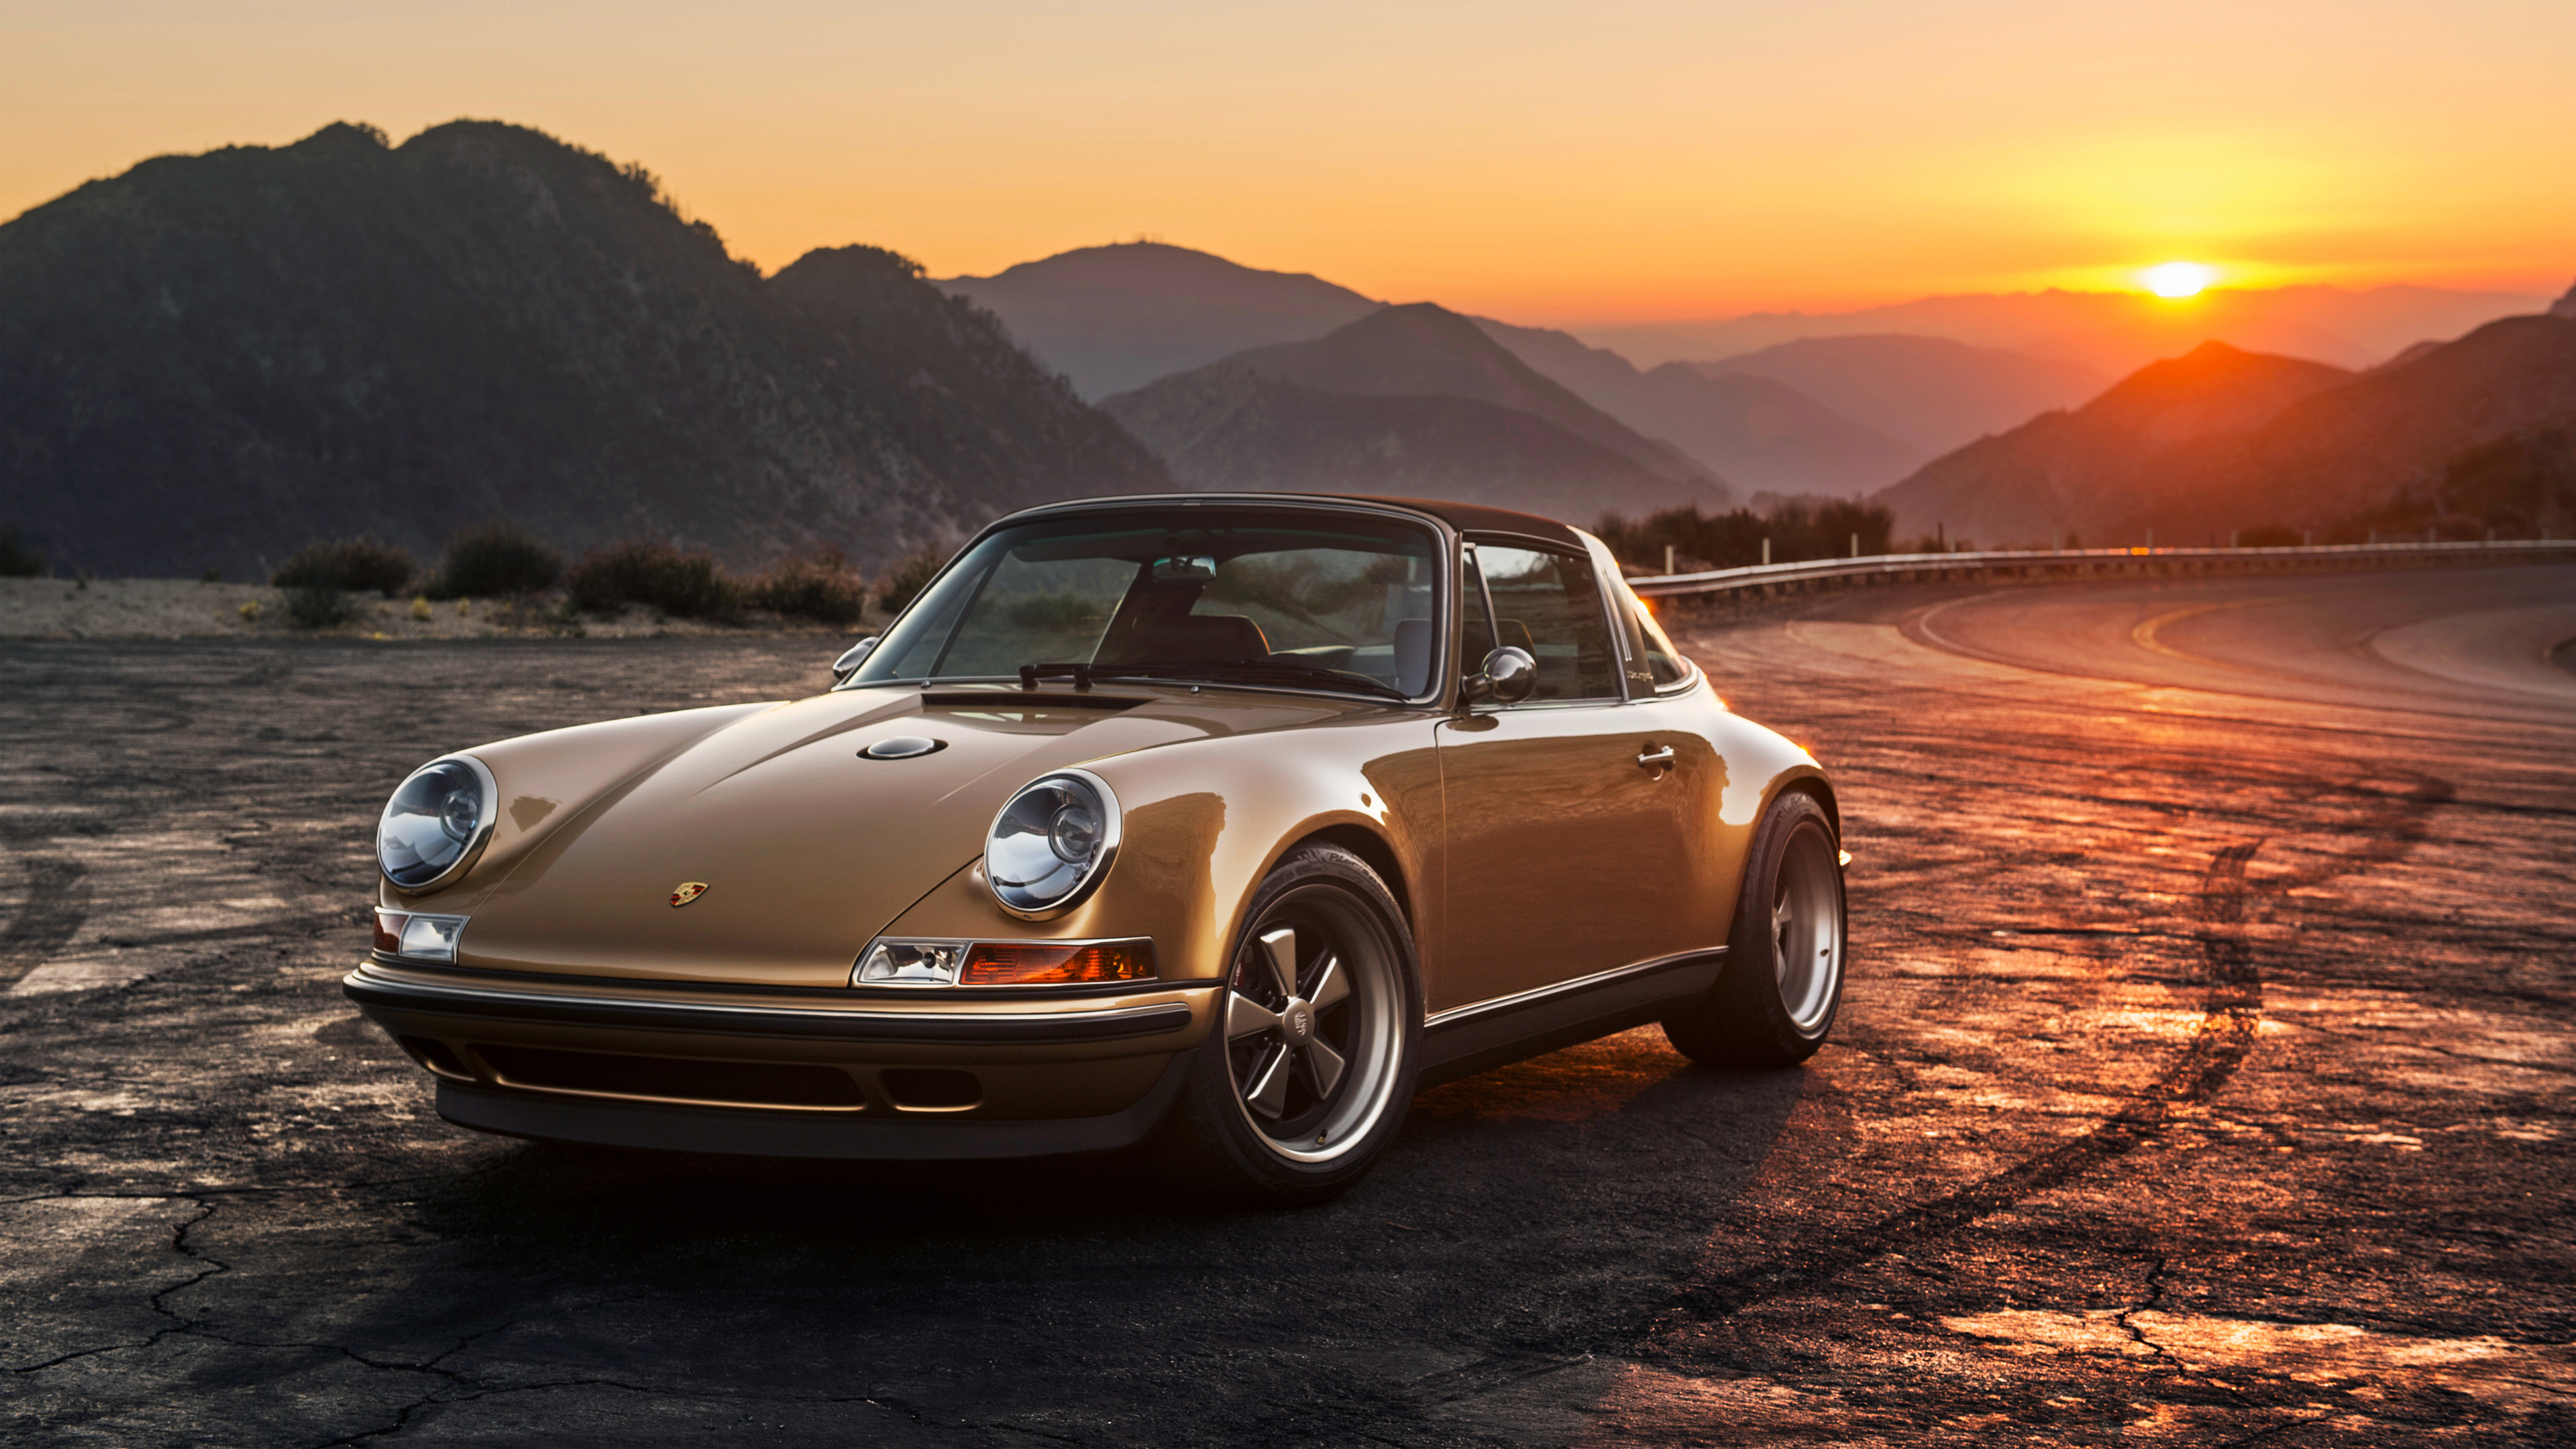 Porsche 911 Wallpapers Posted By John Sellers